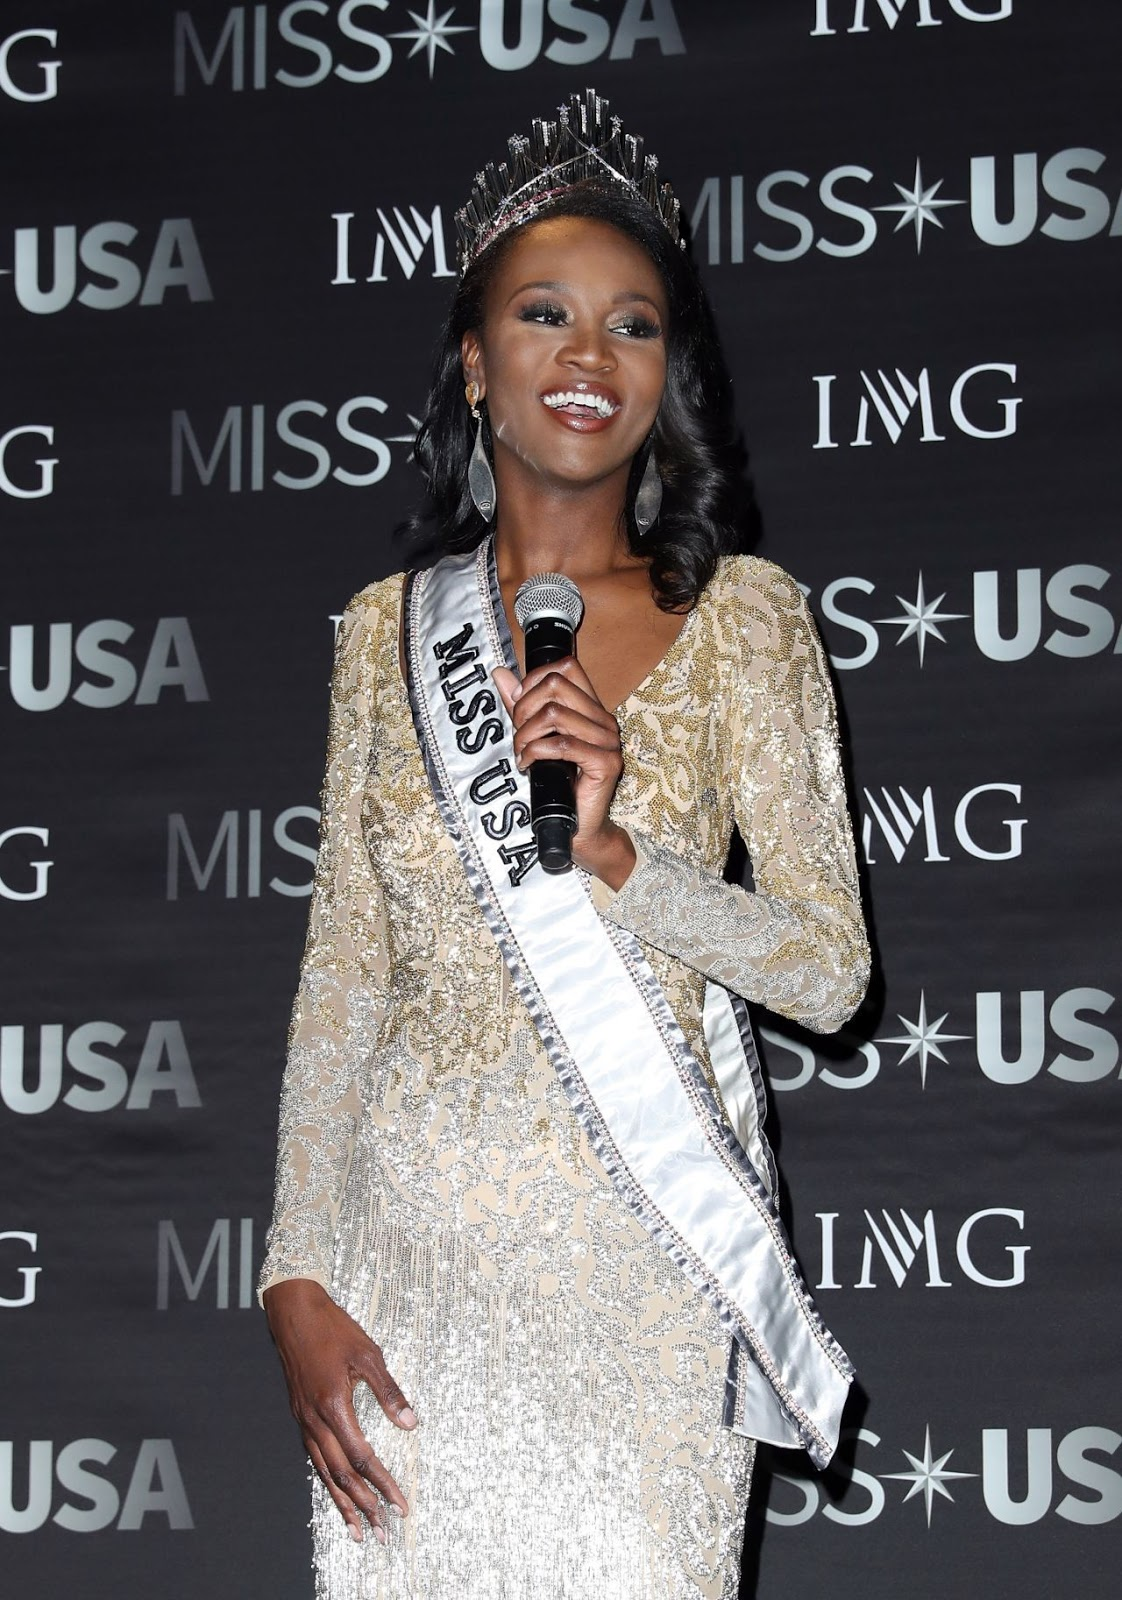 Army Reserve Officer crowned Miss USA 2016